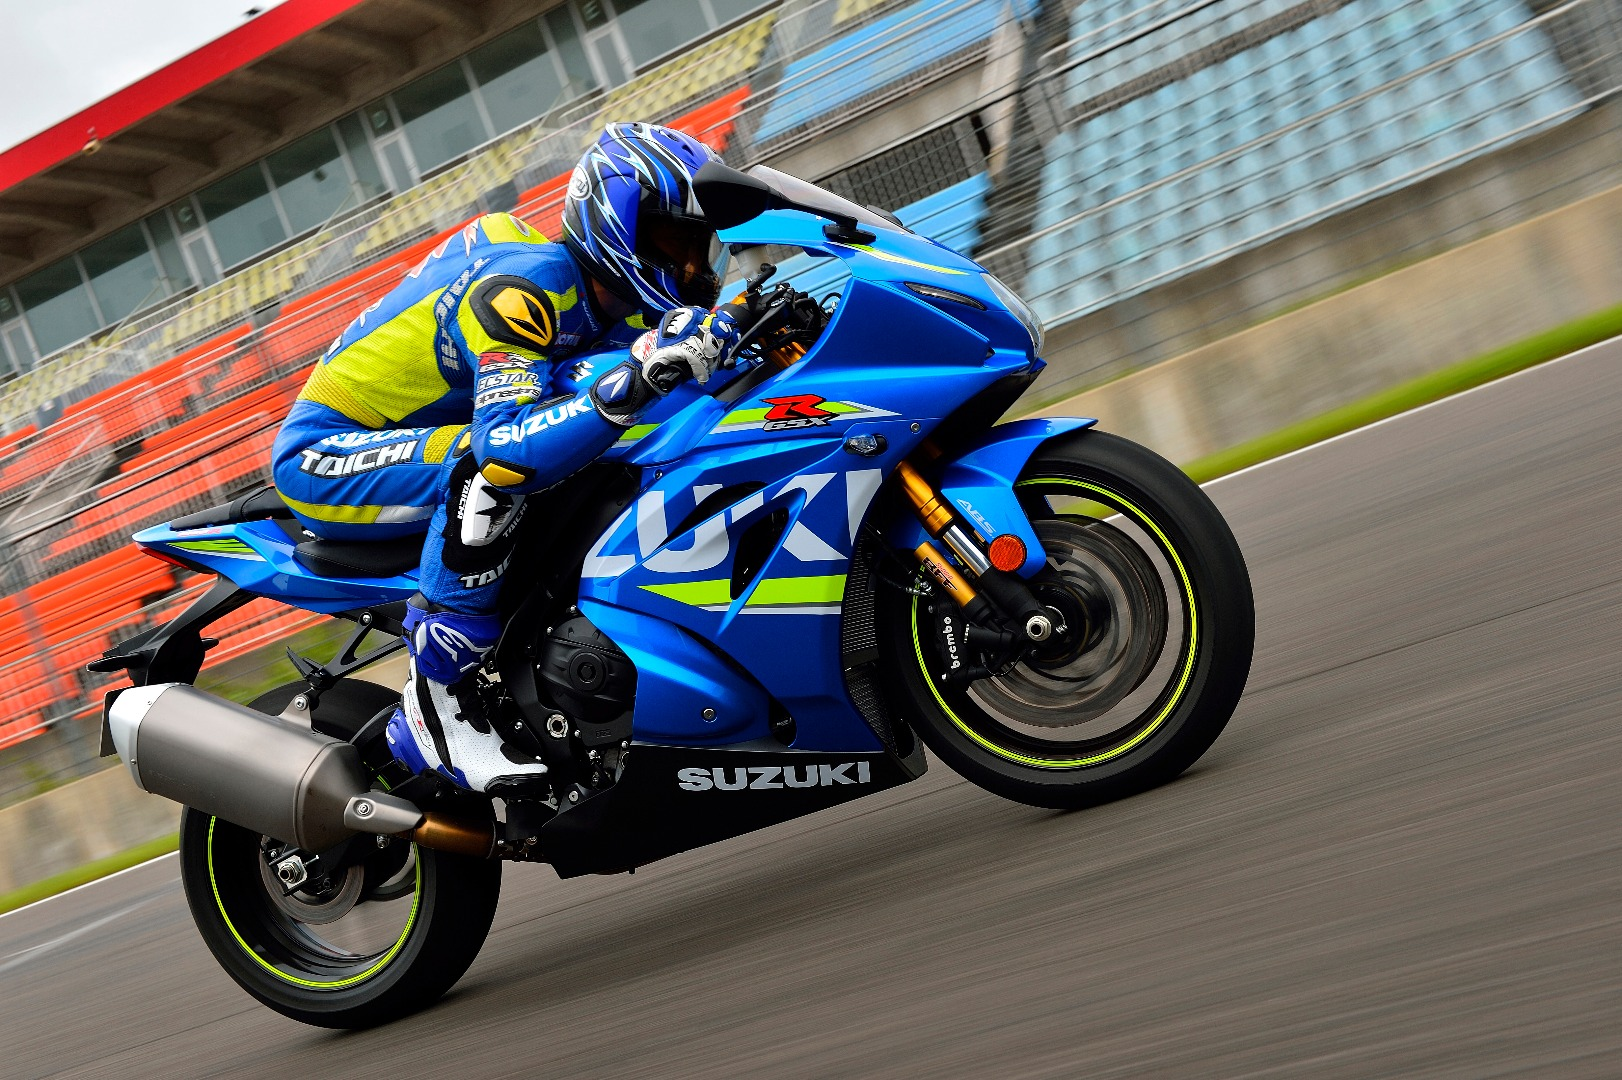 New GSX-R1000 aims at superbike dominance with variable